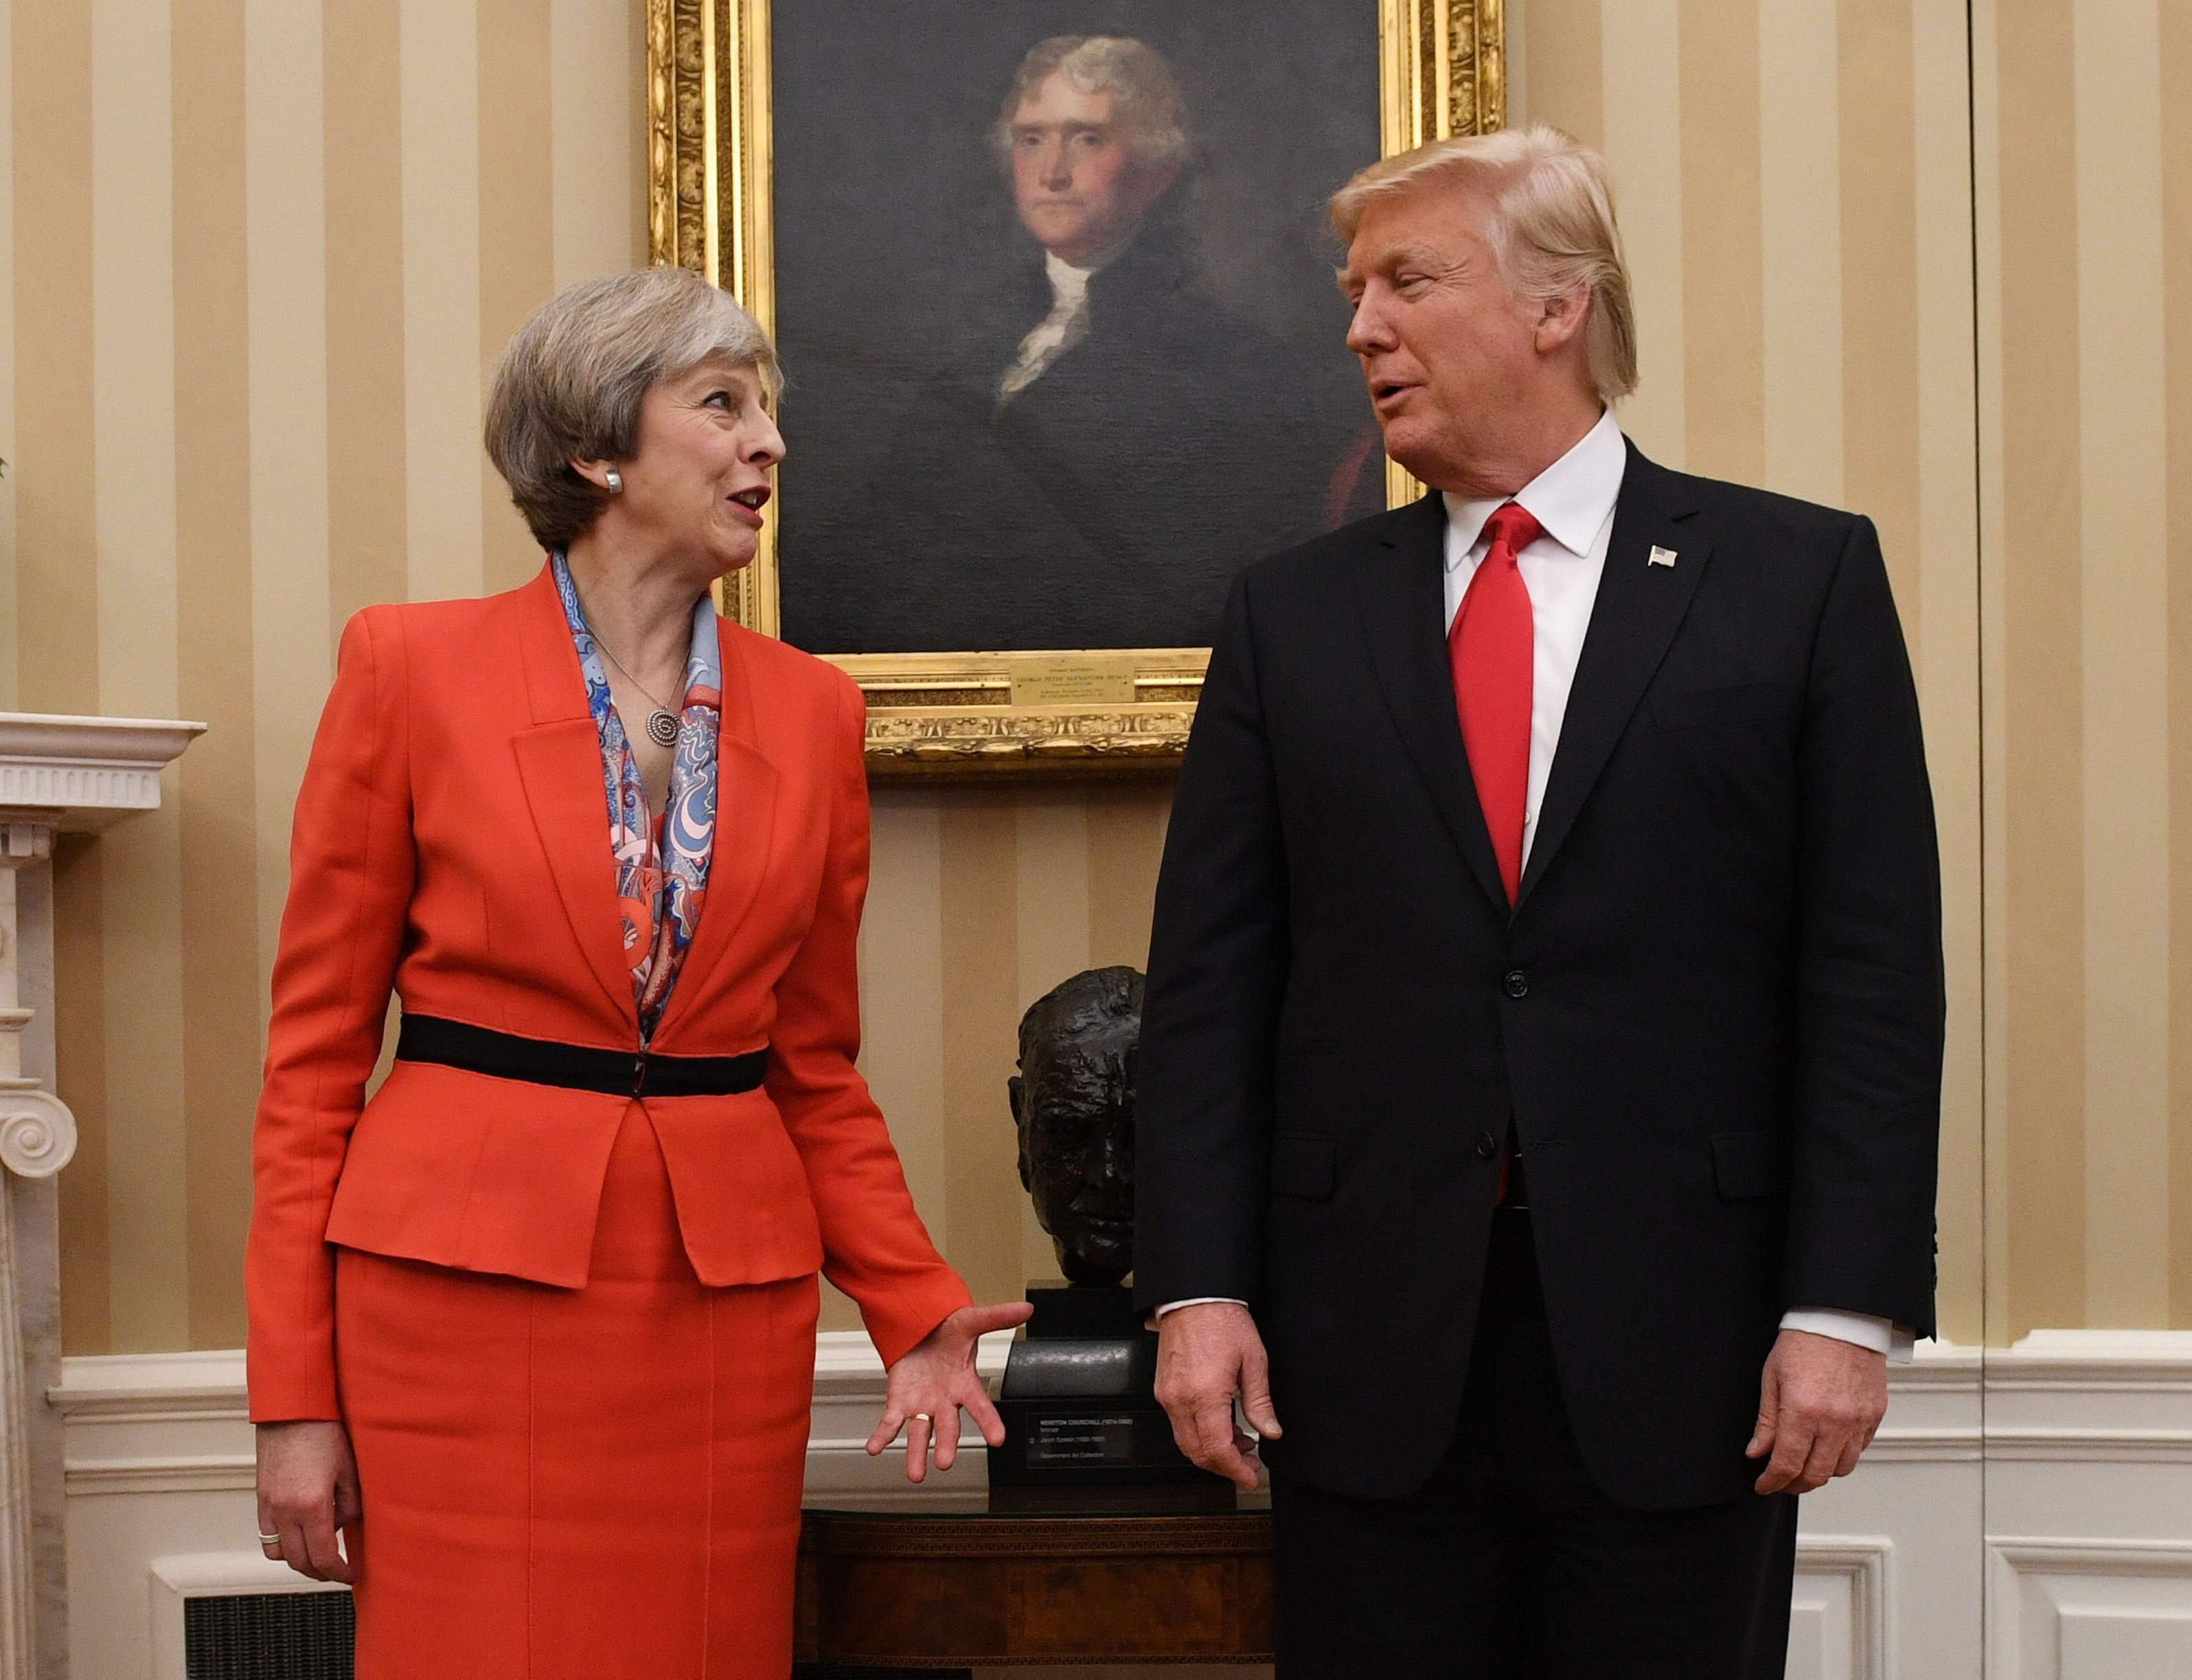 Donald Trump 'To Visit UK In 2018' - But Won't Meet The Queen